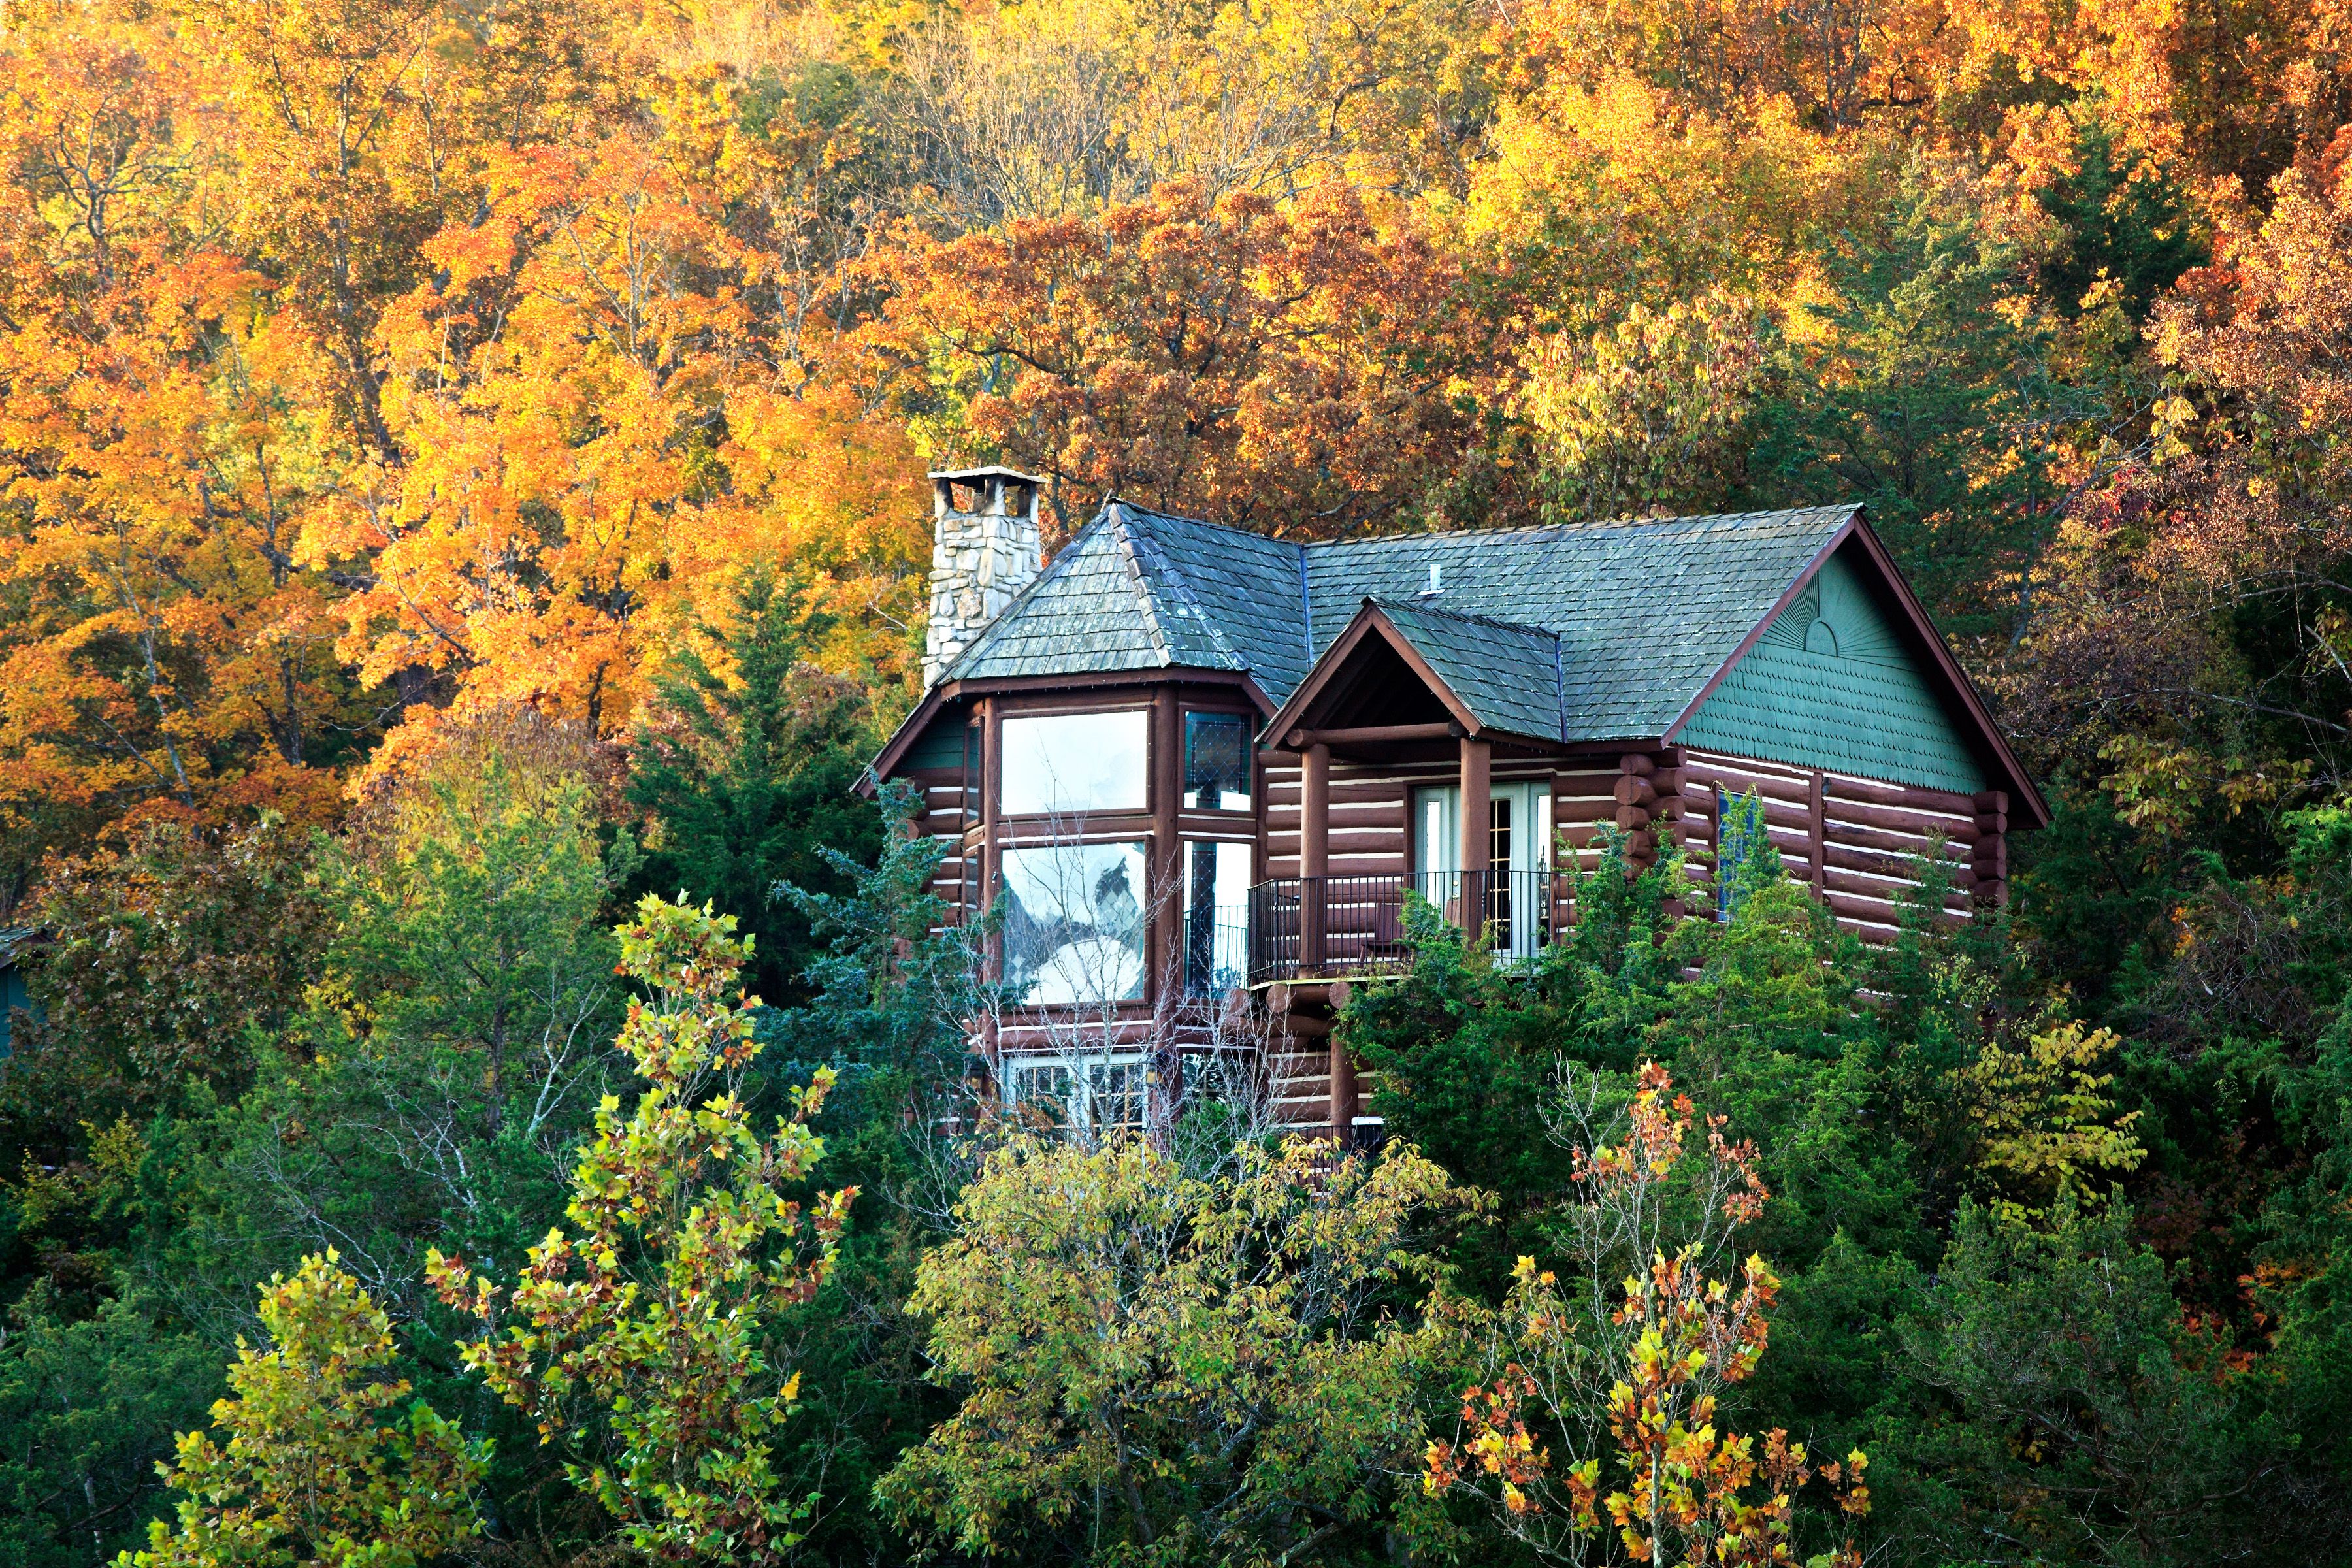 These Cozy Cabins Are The Ultimate Fall Getaway In The